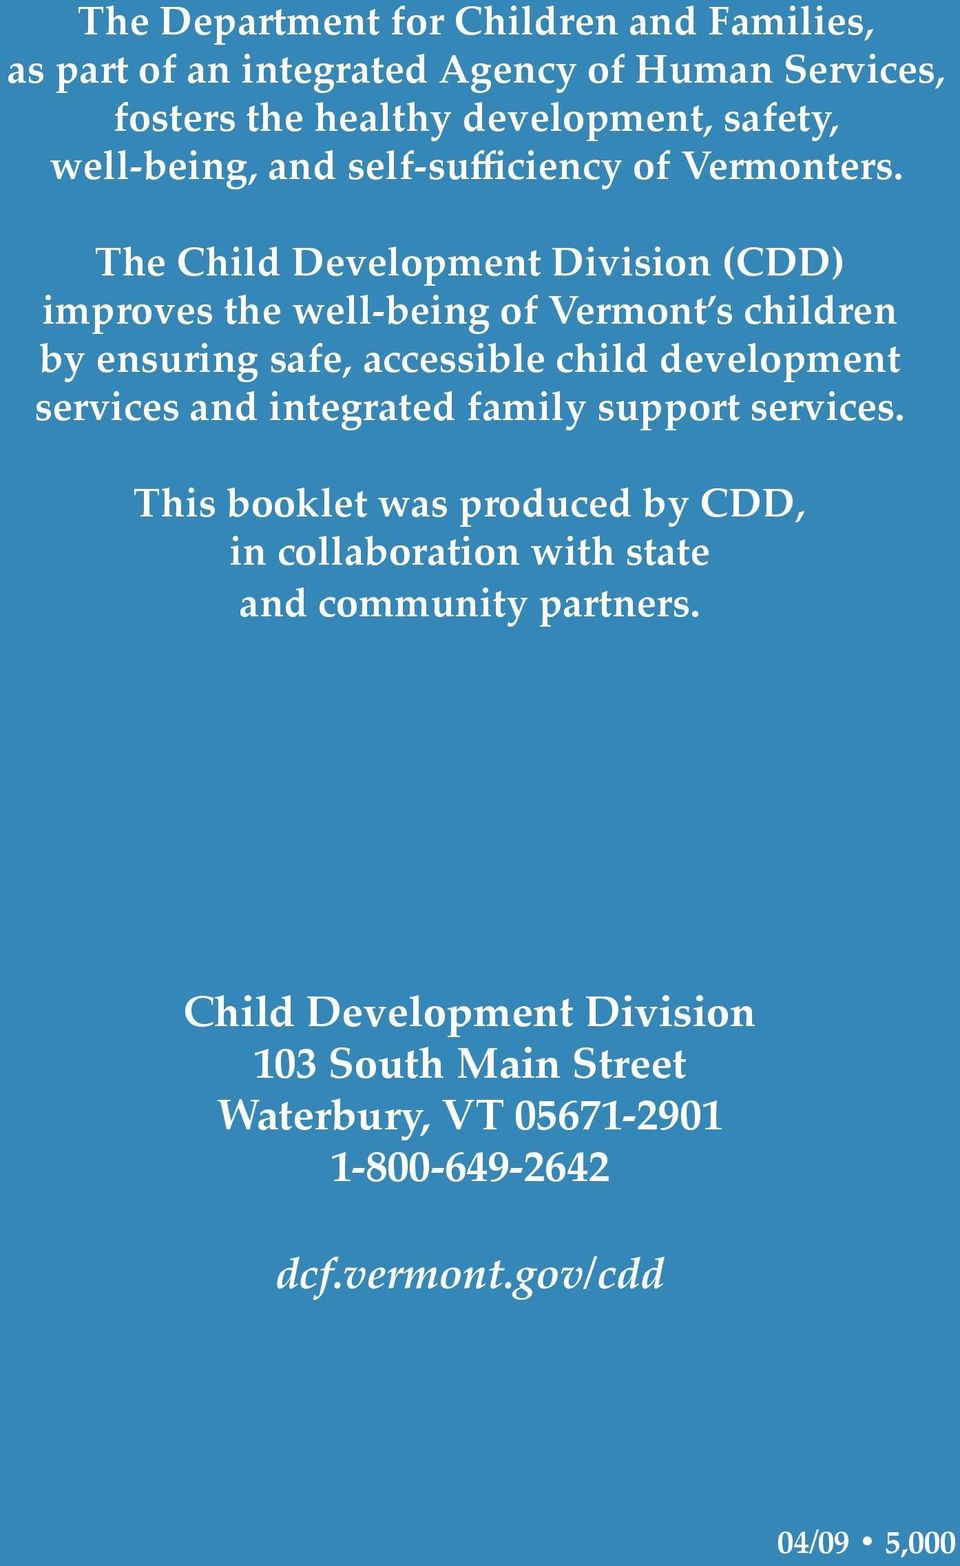 The Child Development Division (CDD) improves the well-being of Vermont s children by ensuring safe, accessible child development services